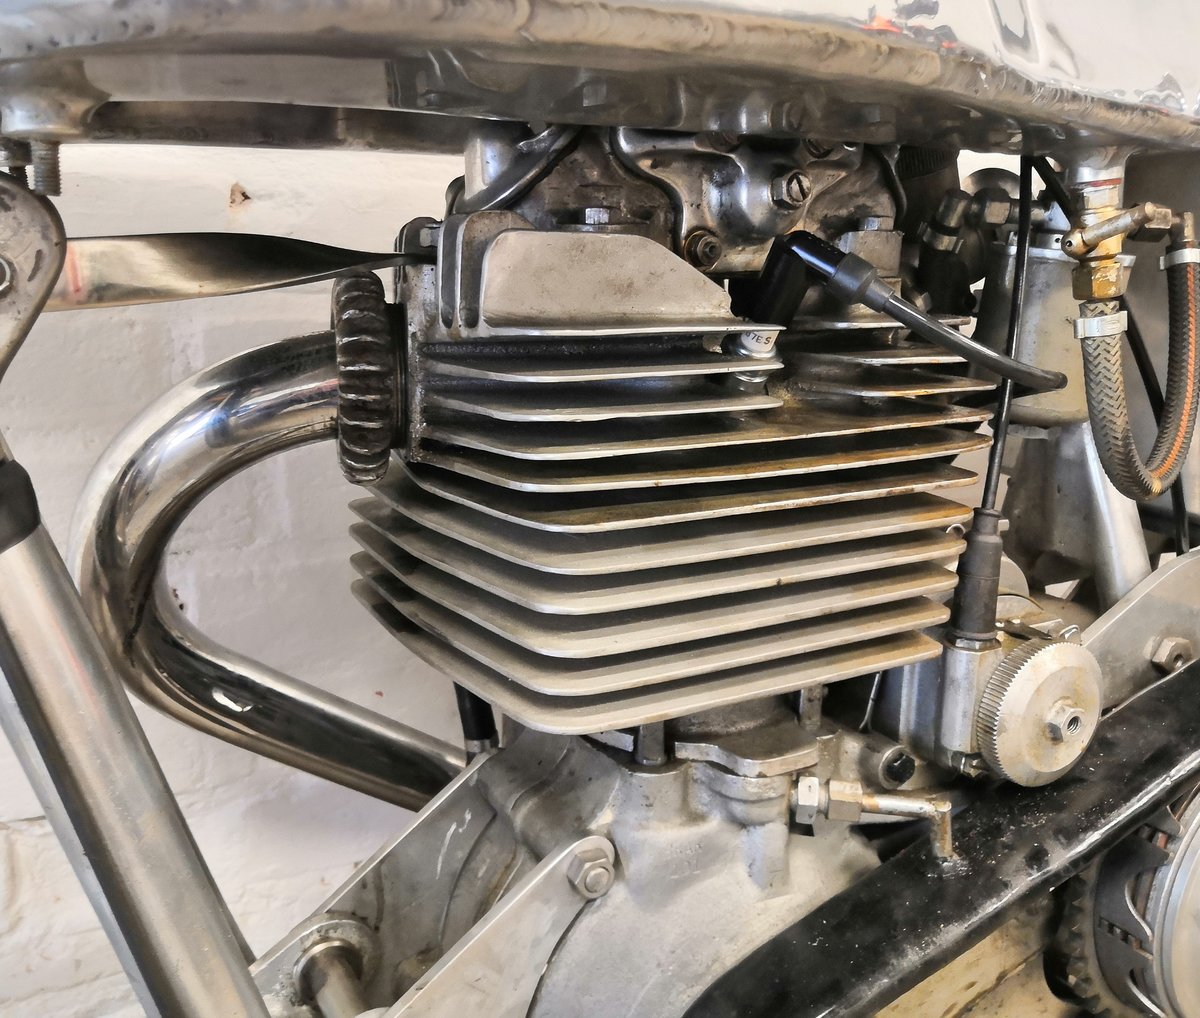 1948 ONE OFF EXCELSIOR 250 MANXMAN with TT PROVENANCE For Sale (picture 6 of 6)